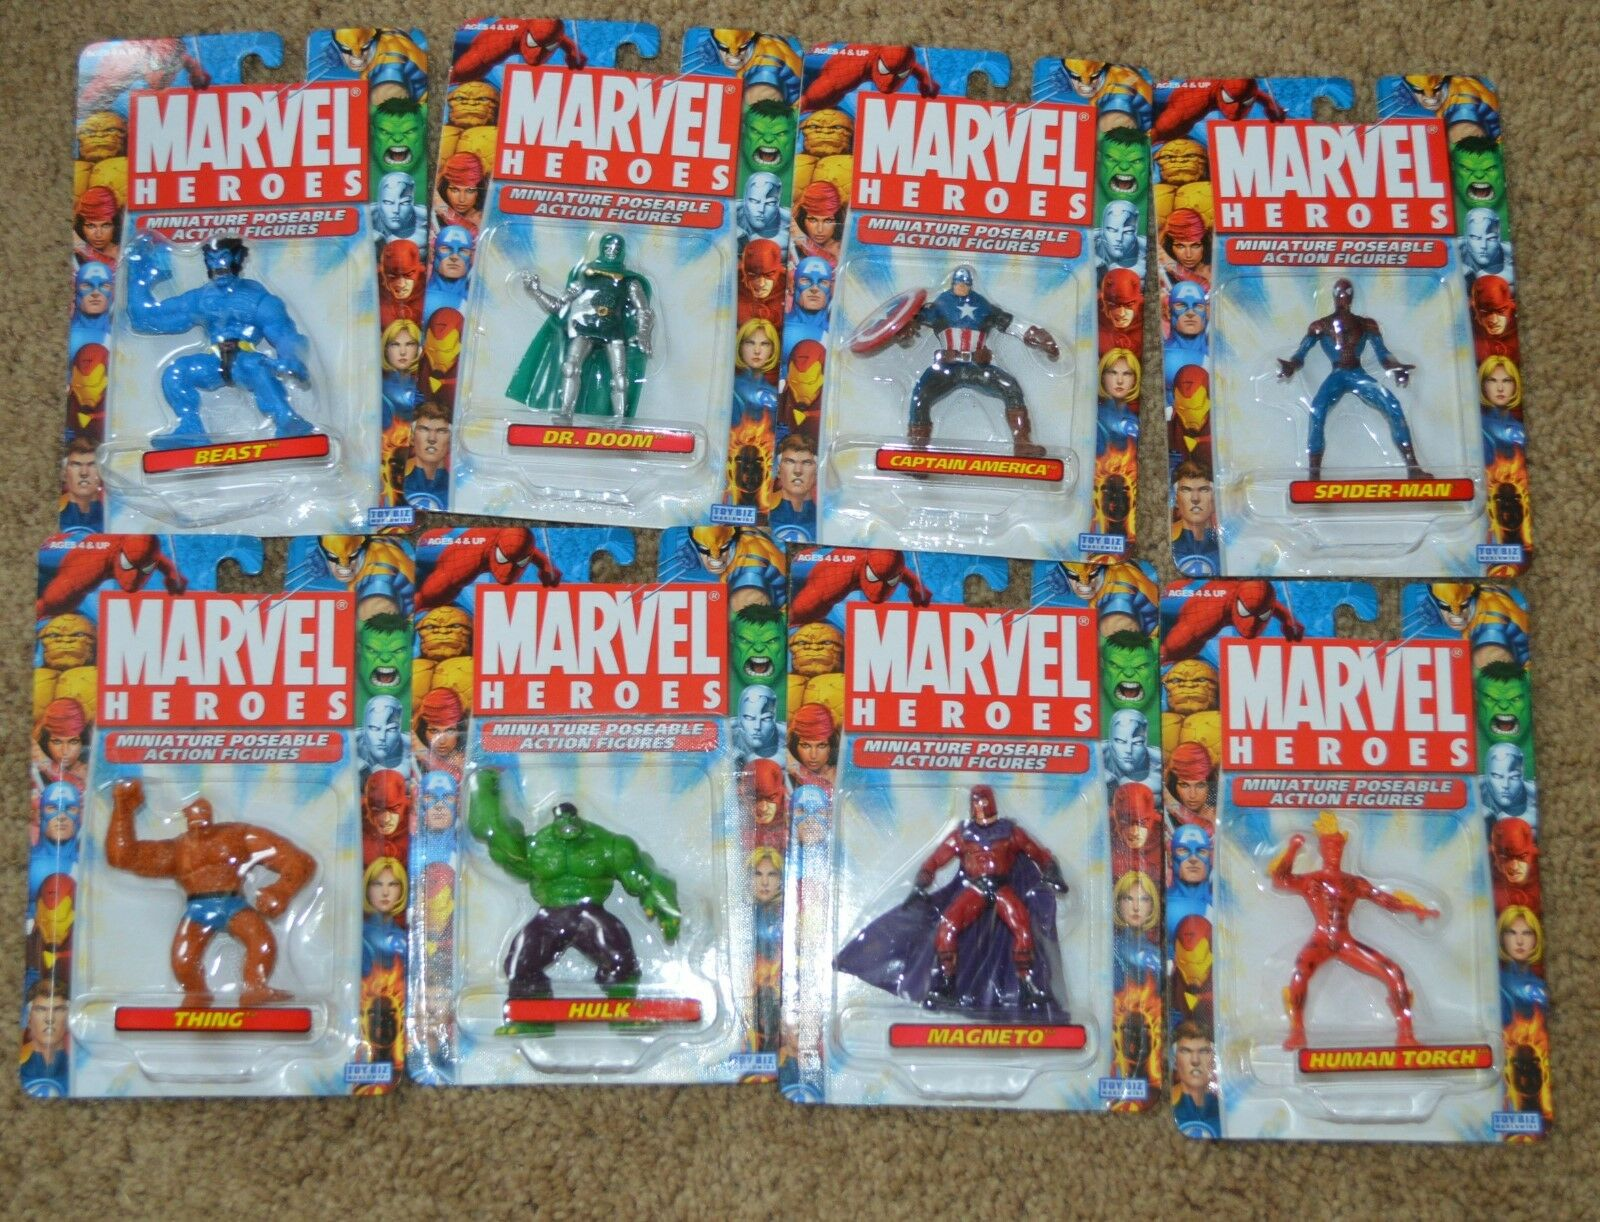 New Toy Biz Marvel Heroes Miniature Poseable Action Figure Lot of 8 Thing